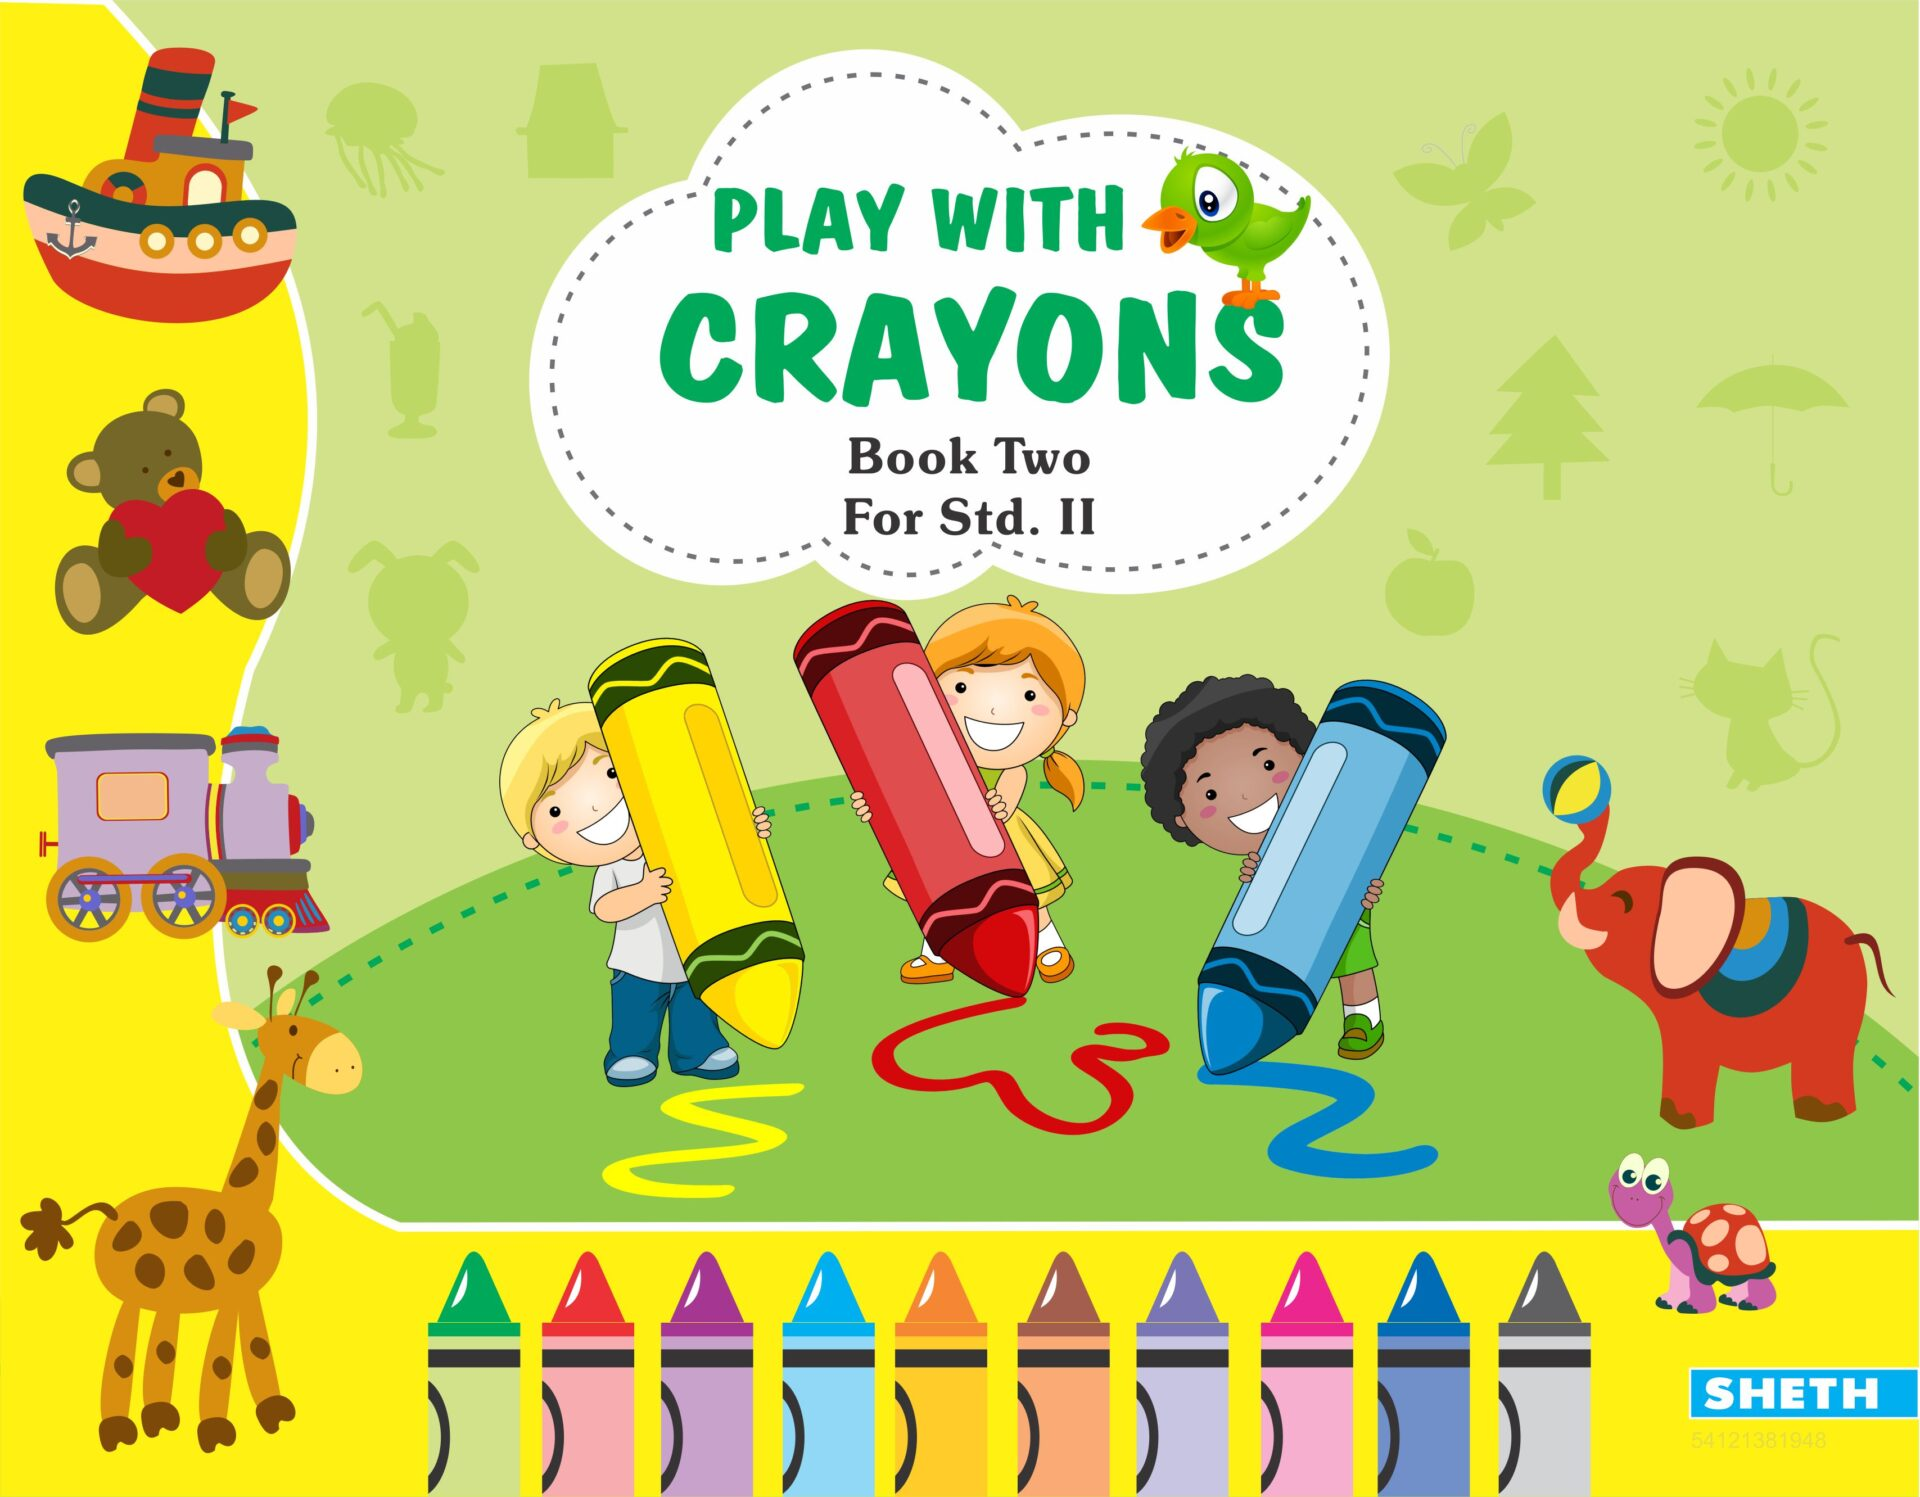 Sheth Books Play with Crayons Book 2 for Std. II 1